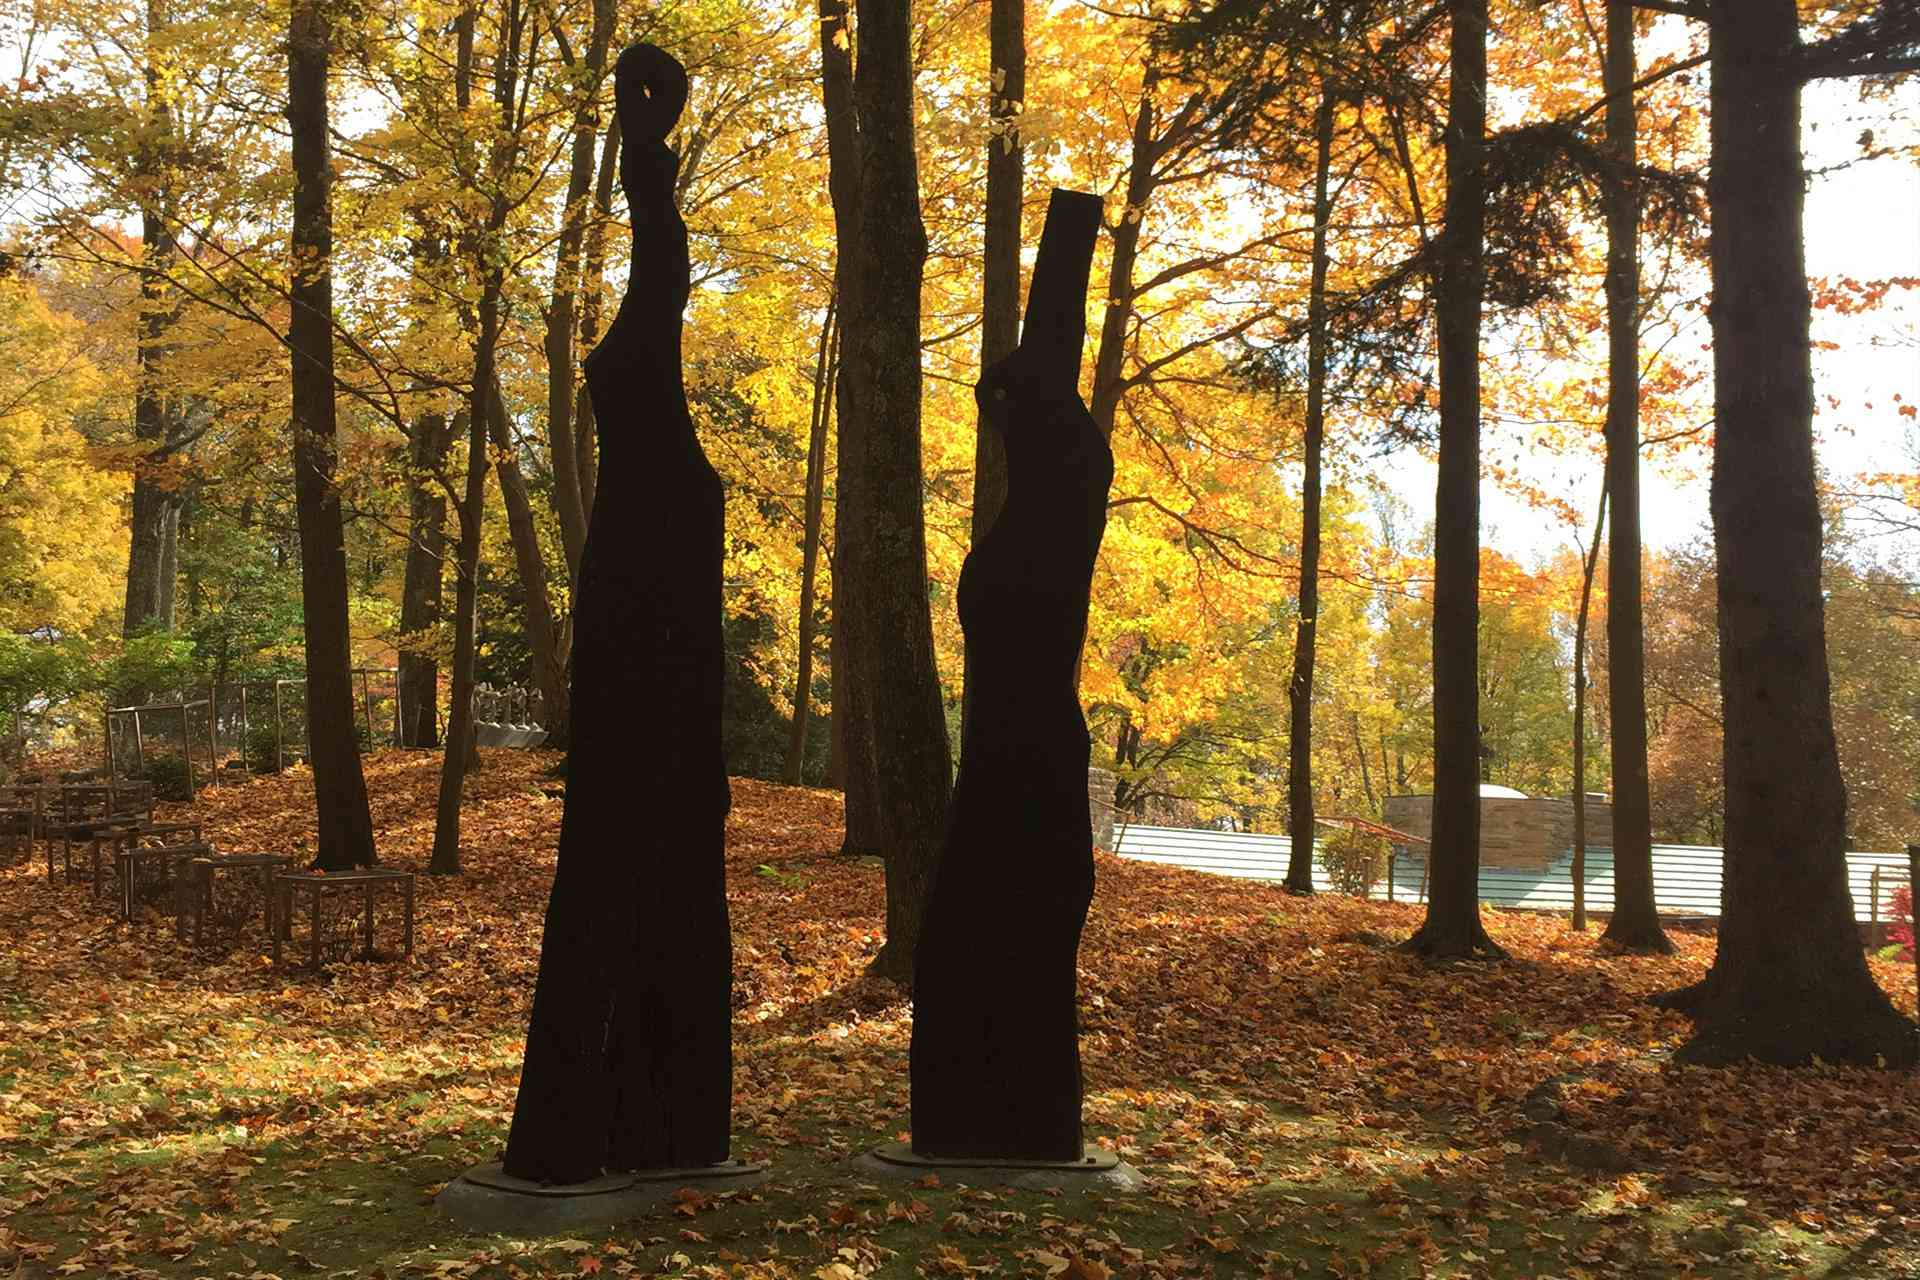 two dark abstract scuplptures in a wooded area at autumn